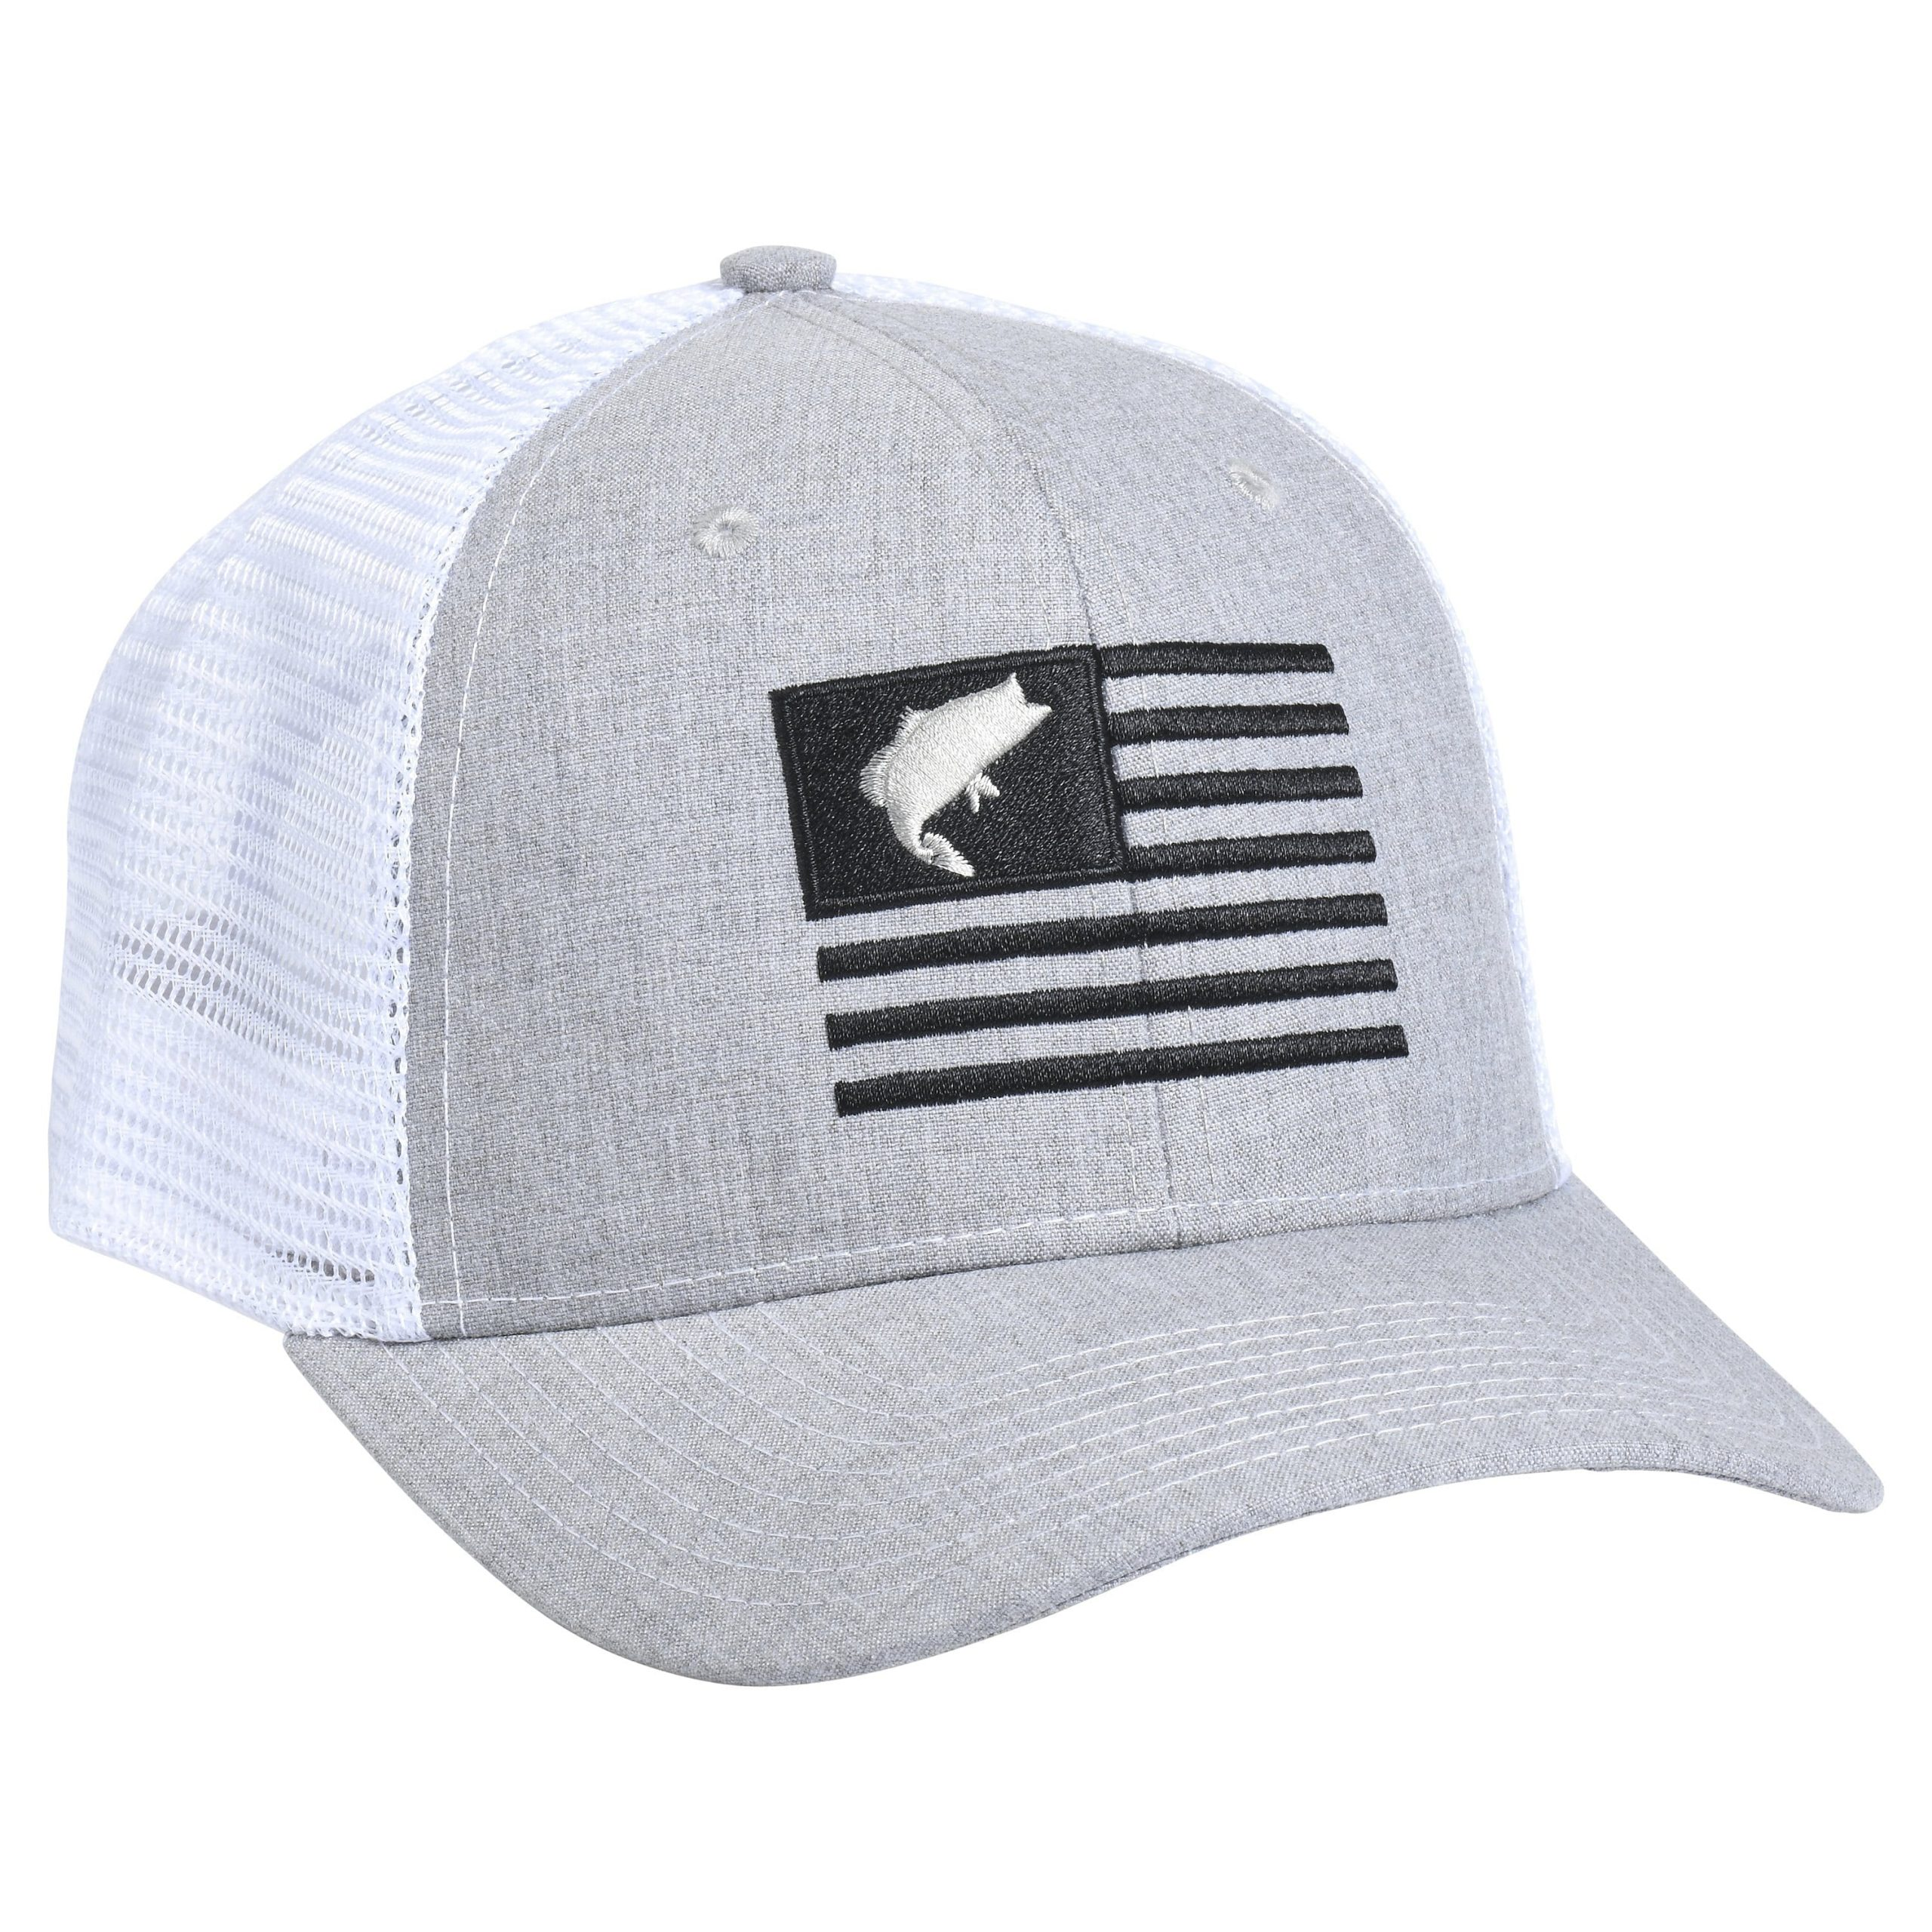 Bass Flag Embroidery Heather/White